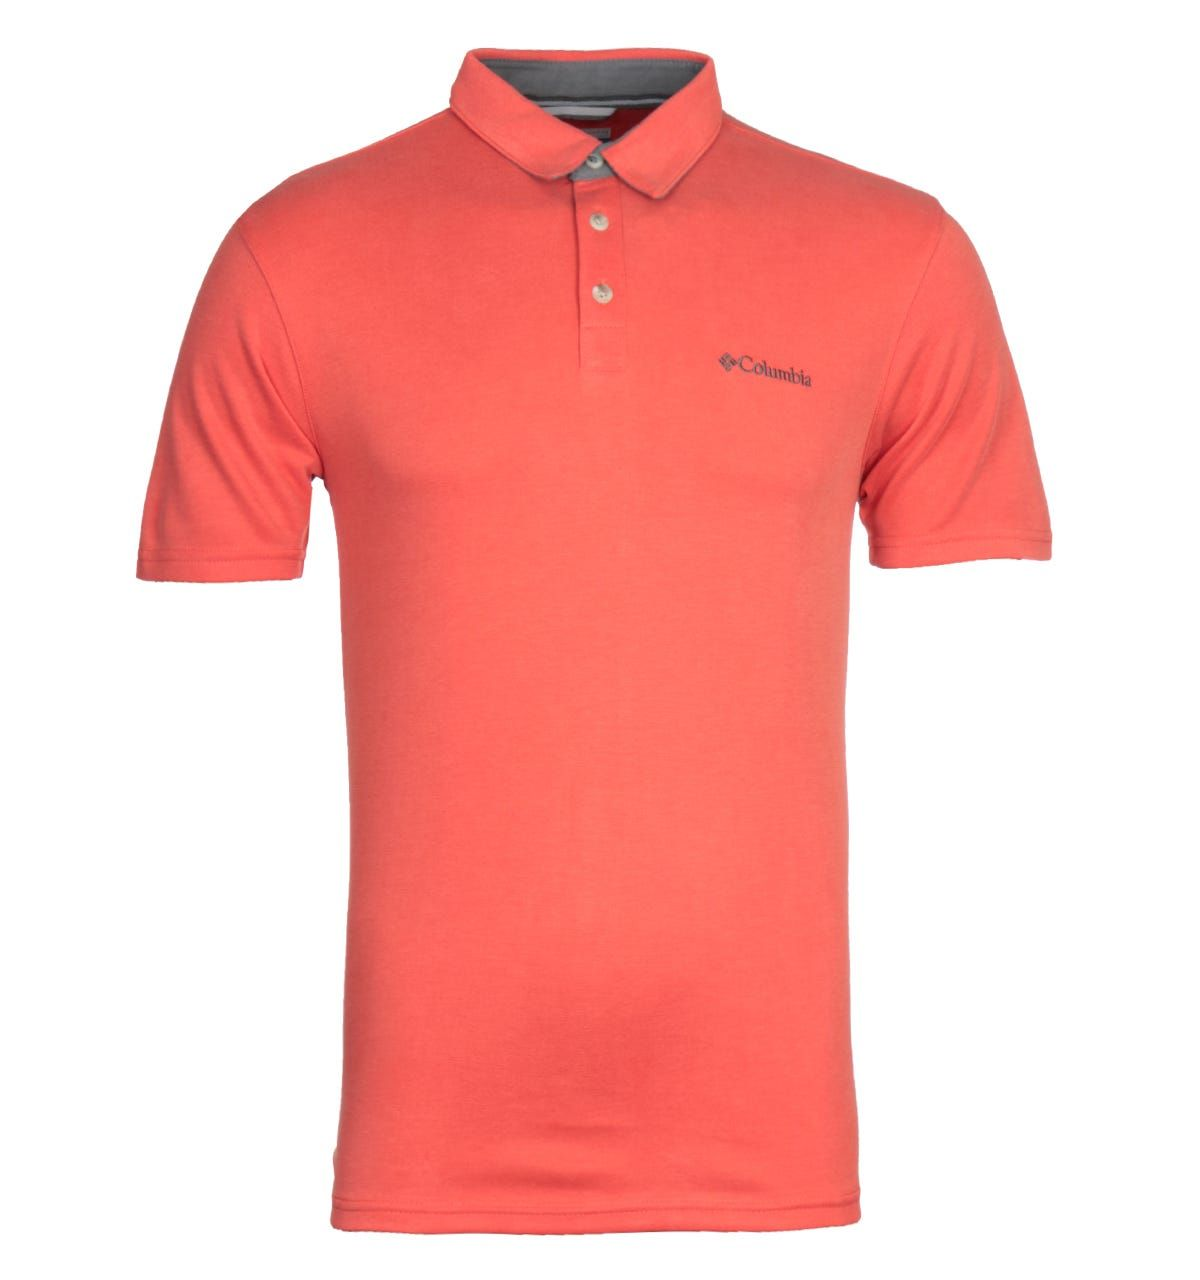 Columbia Nelson Point Red Polo Shirt